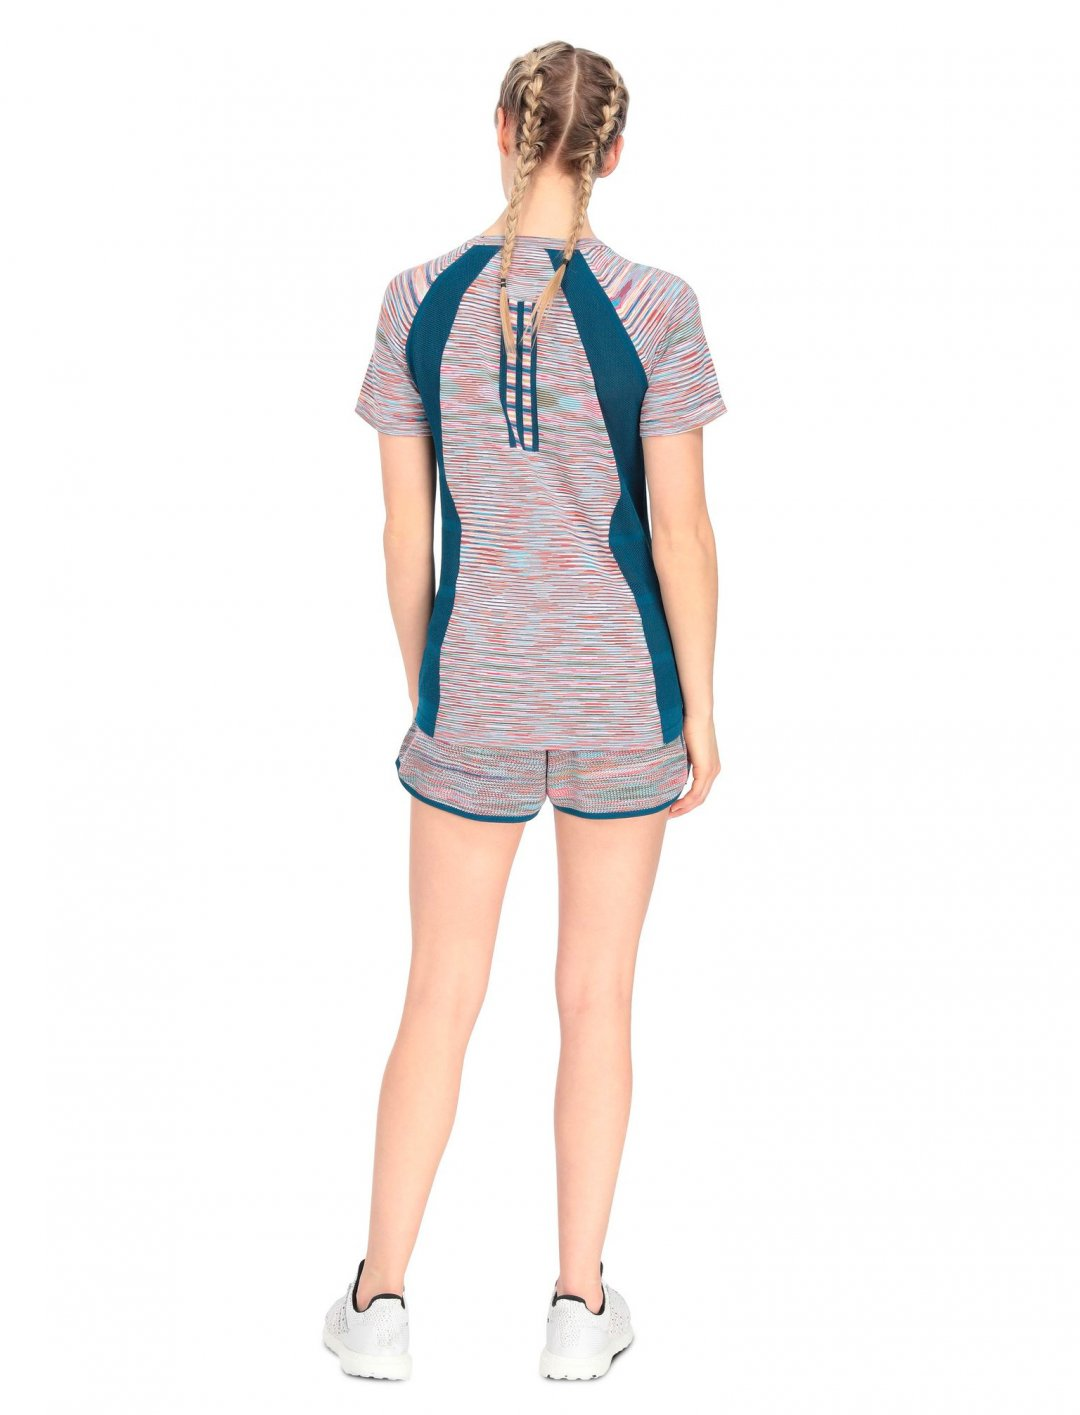 "City Runners T-shirt {""id"":5,""product_section_id"":1,""name"":""Clothing"",""order"":5} Adidas x Missoni"